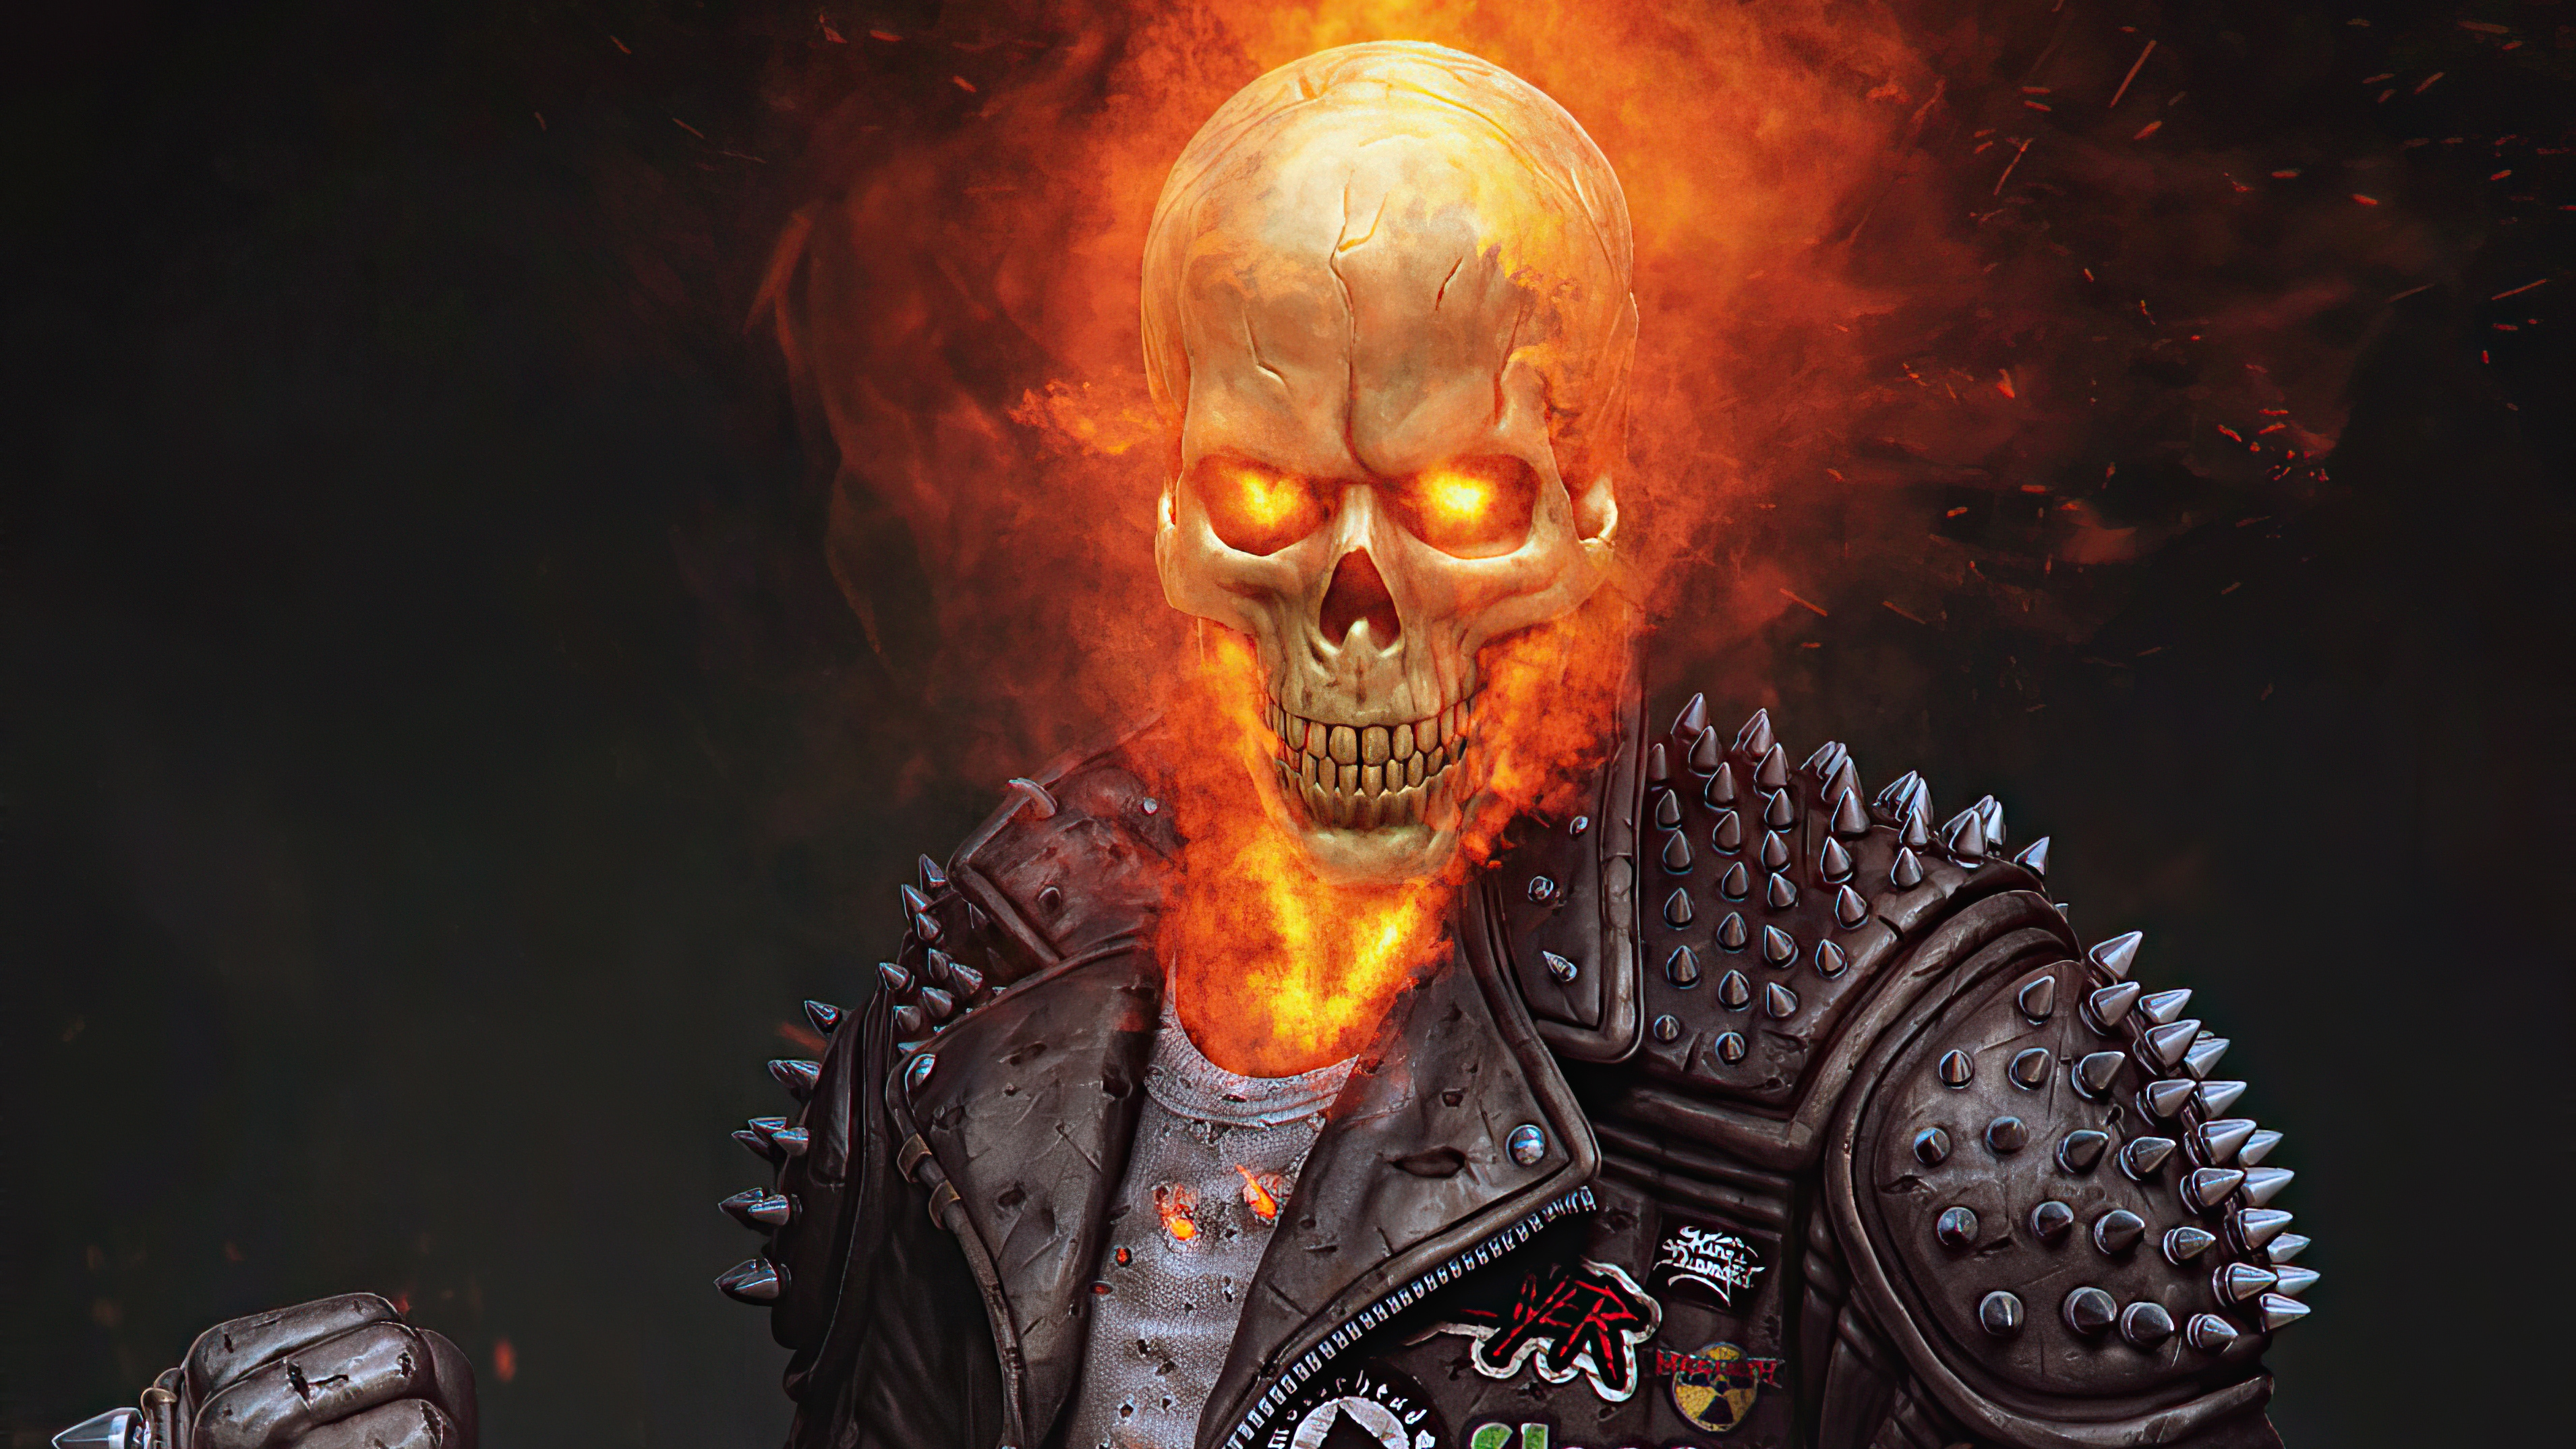 5 Ghost Rider Hd Wallpapers Backgrounds